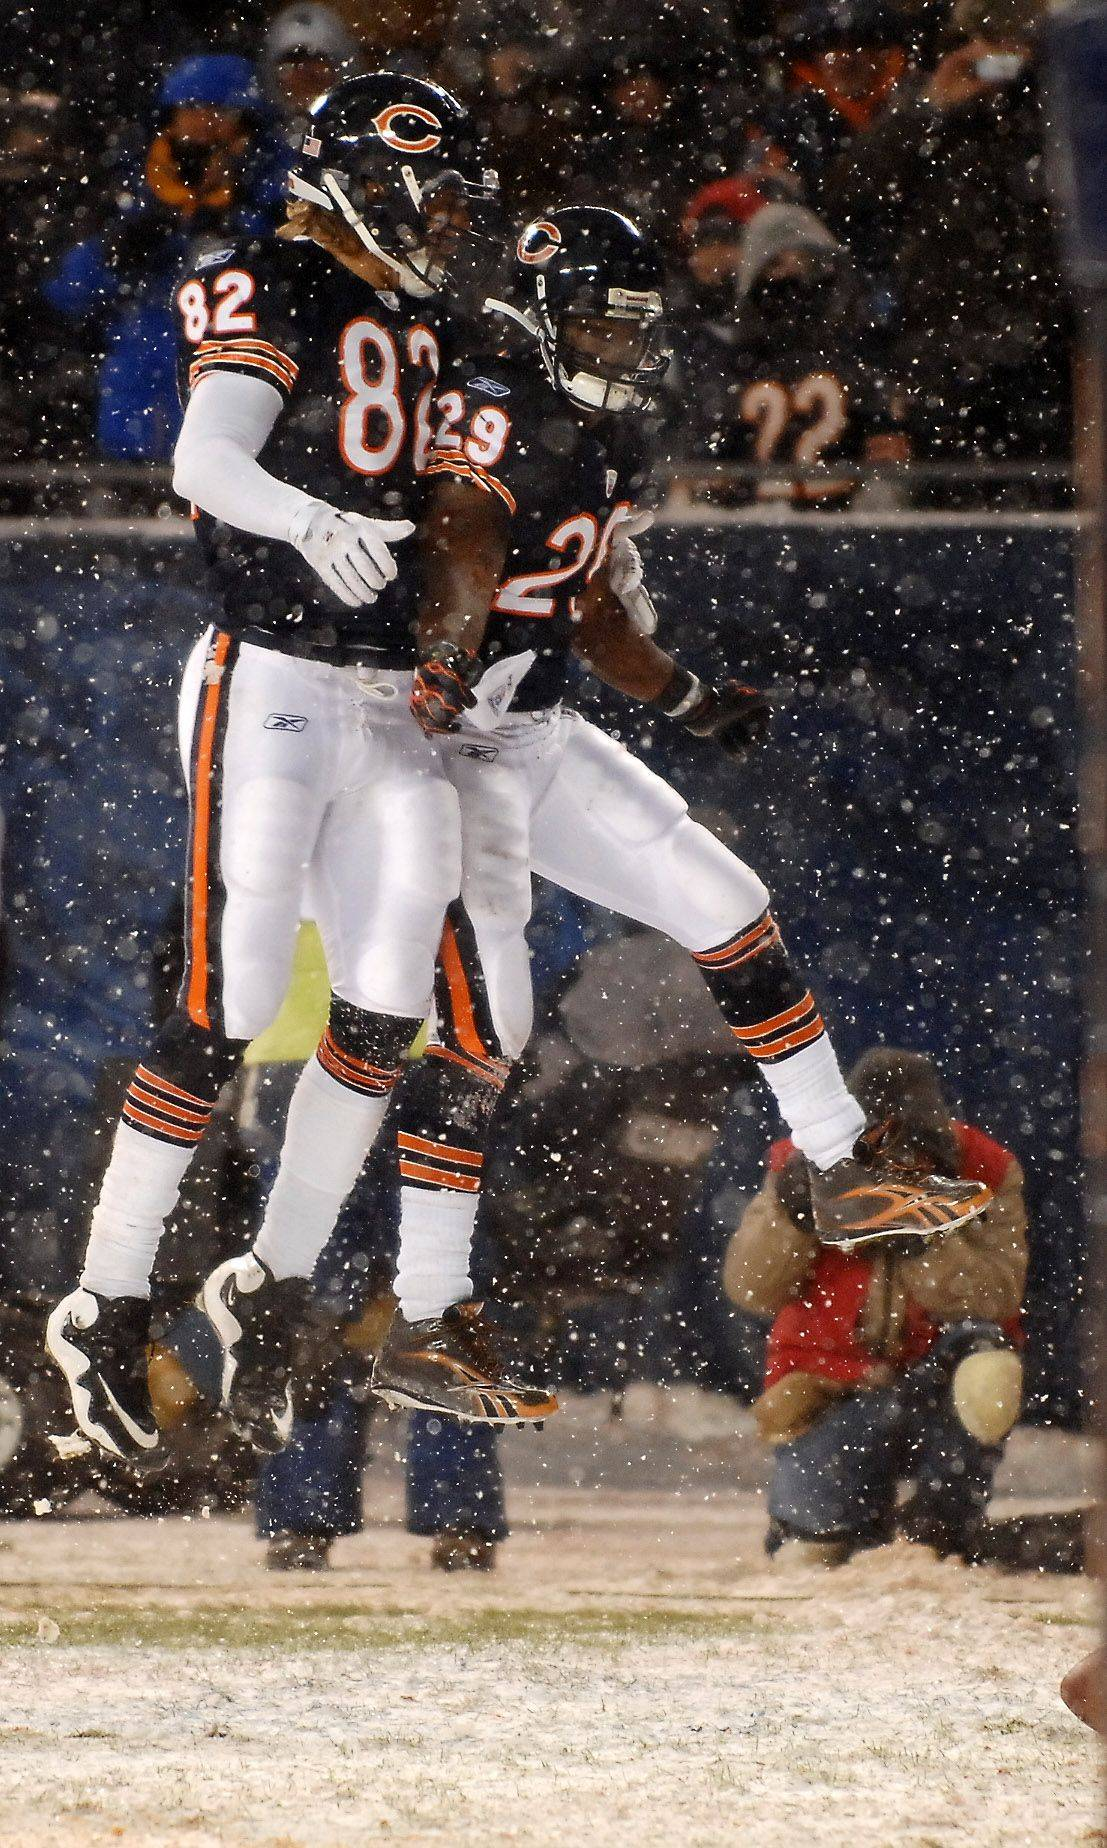 Chicago Bears tight end Greg Olsen and running back Chester Taylor celebrate Taylor's short touchdown run.